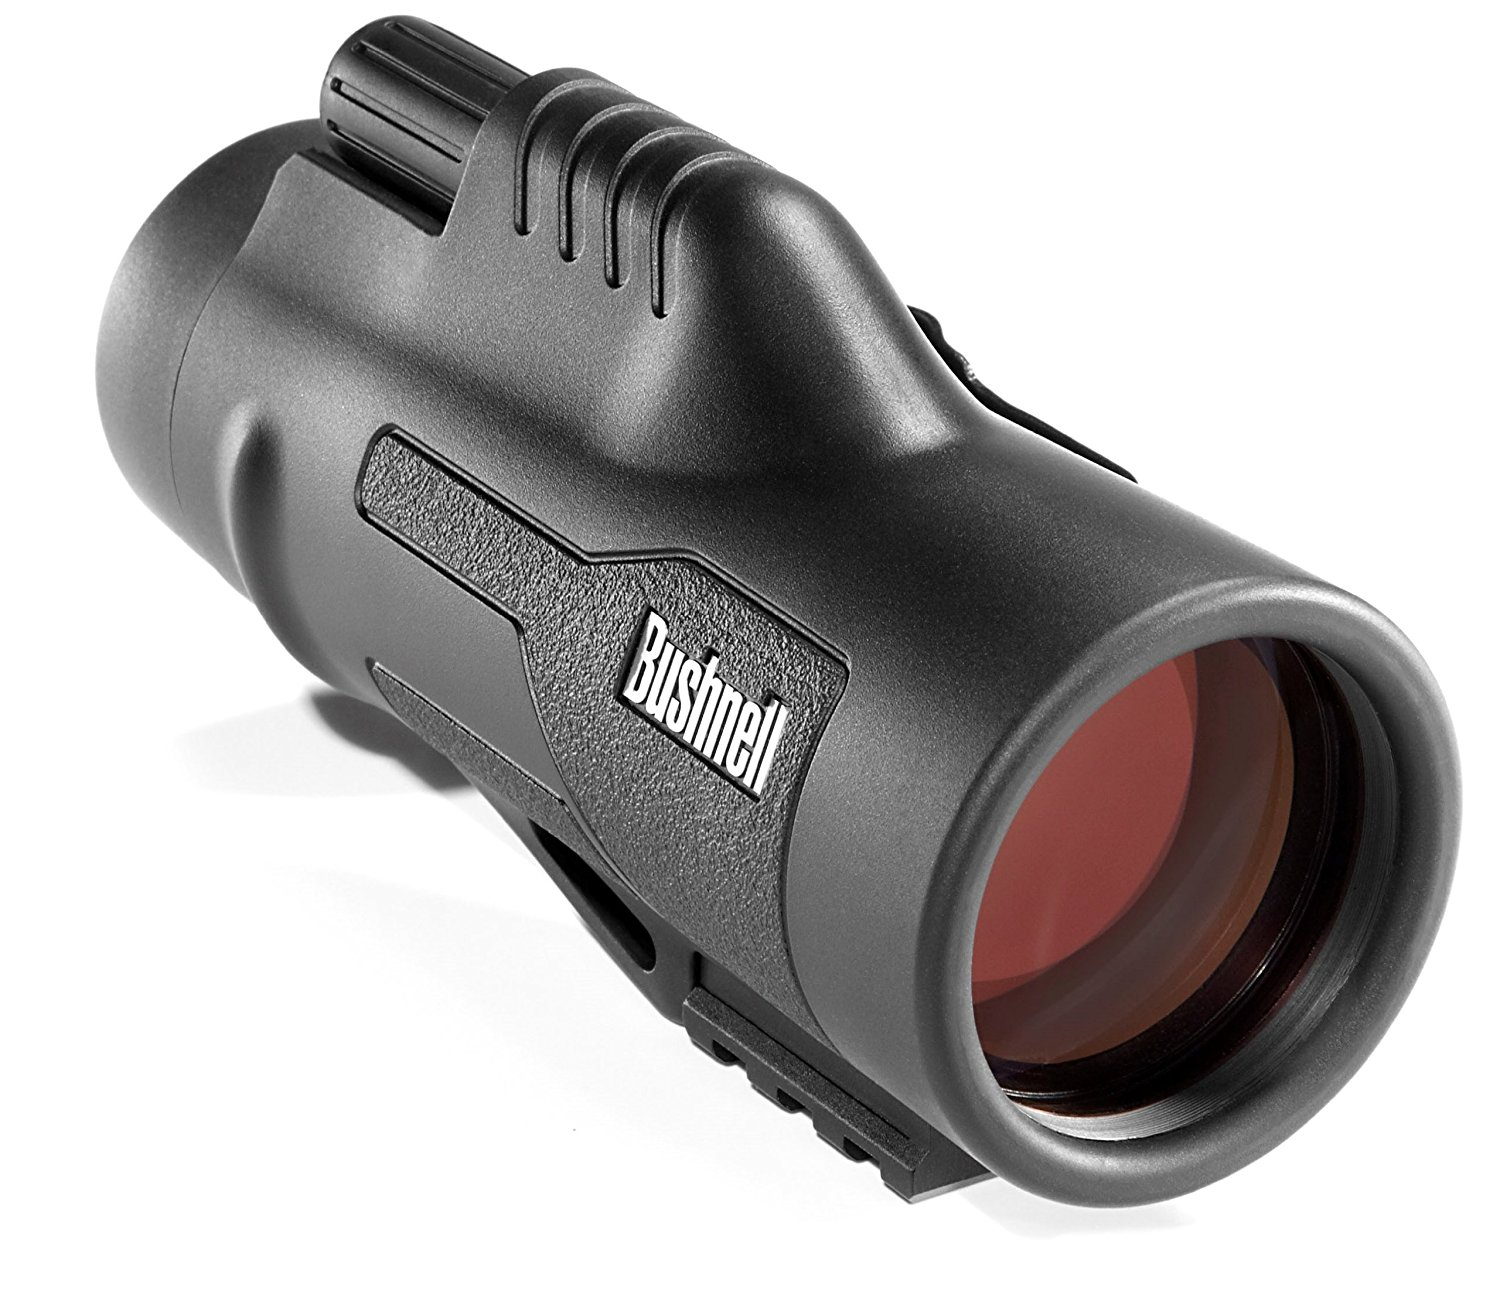 3. Bushnell 10 x 42-mm Ultra HD Monocular